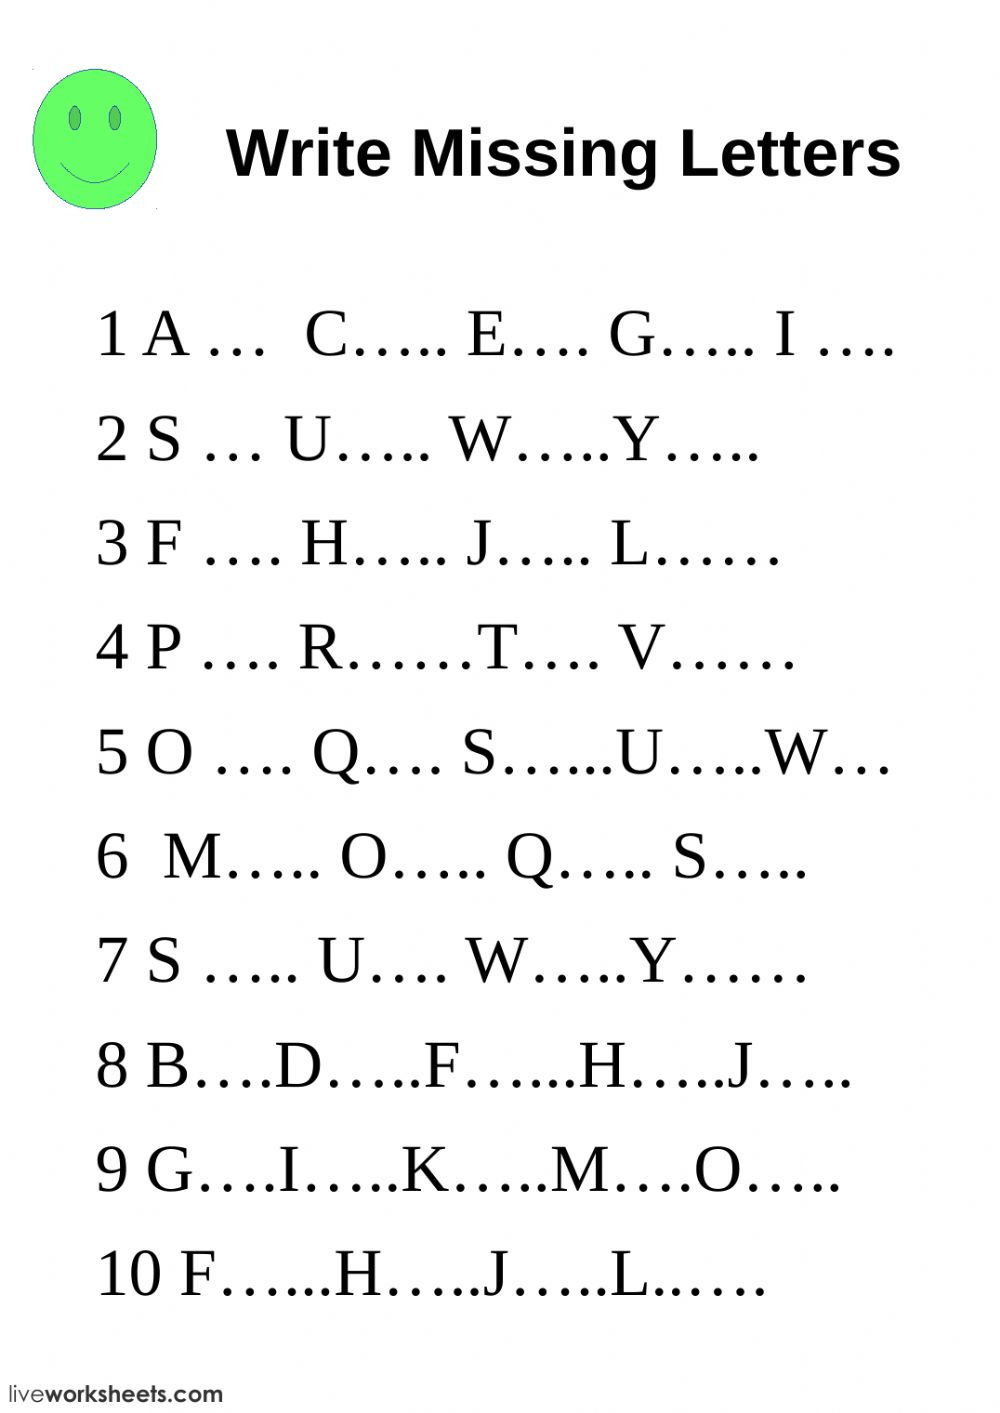 Write Missing Letters - Interactive Worksheet pertaining to Letter I Alphabet Worksheets